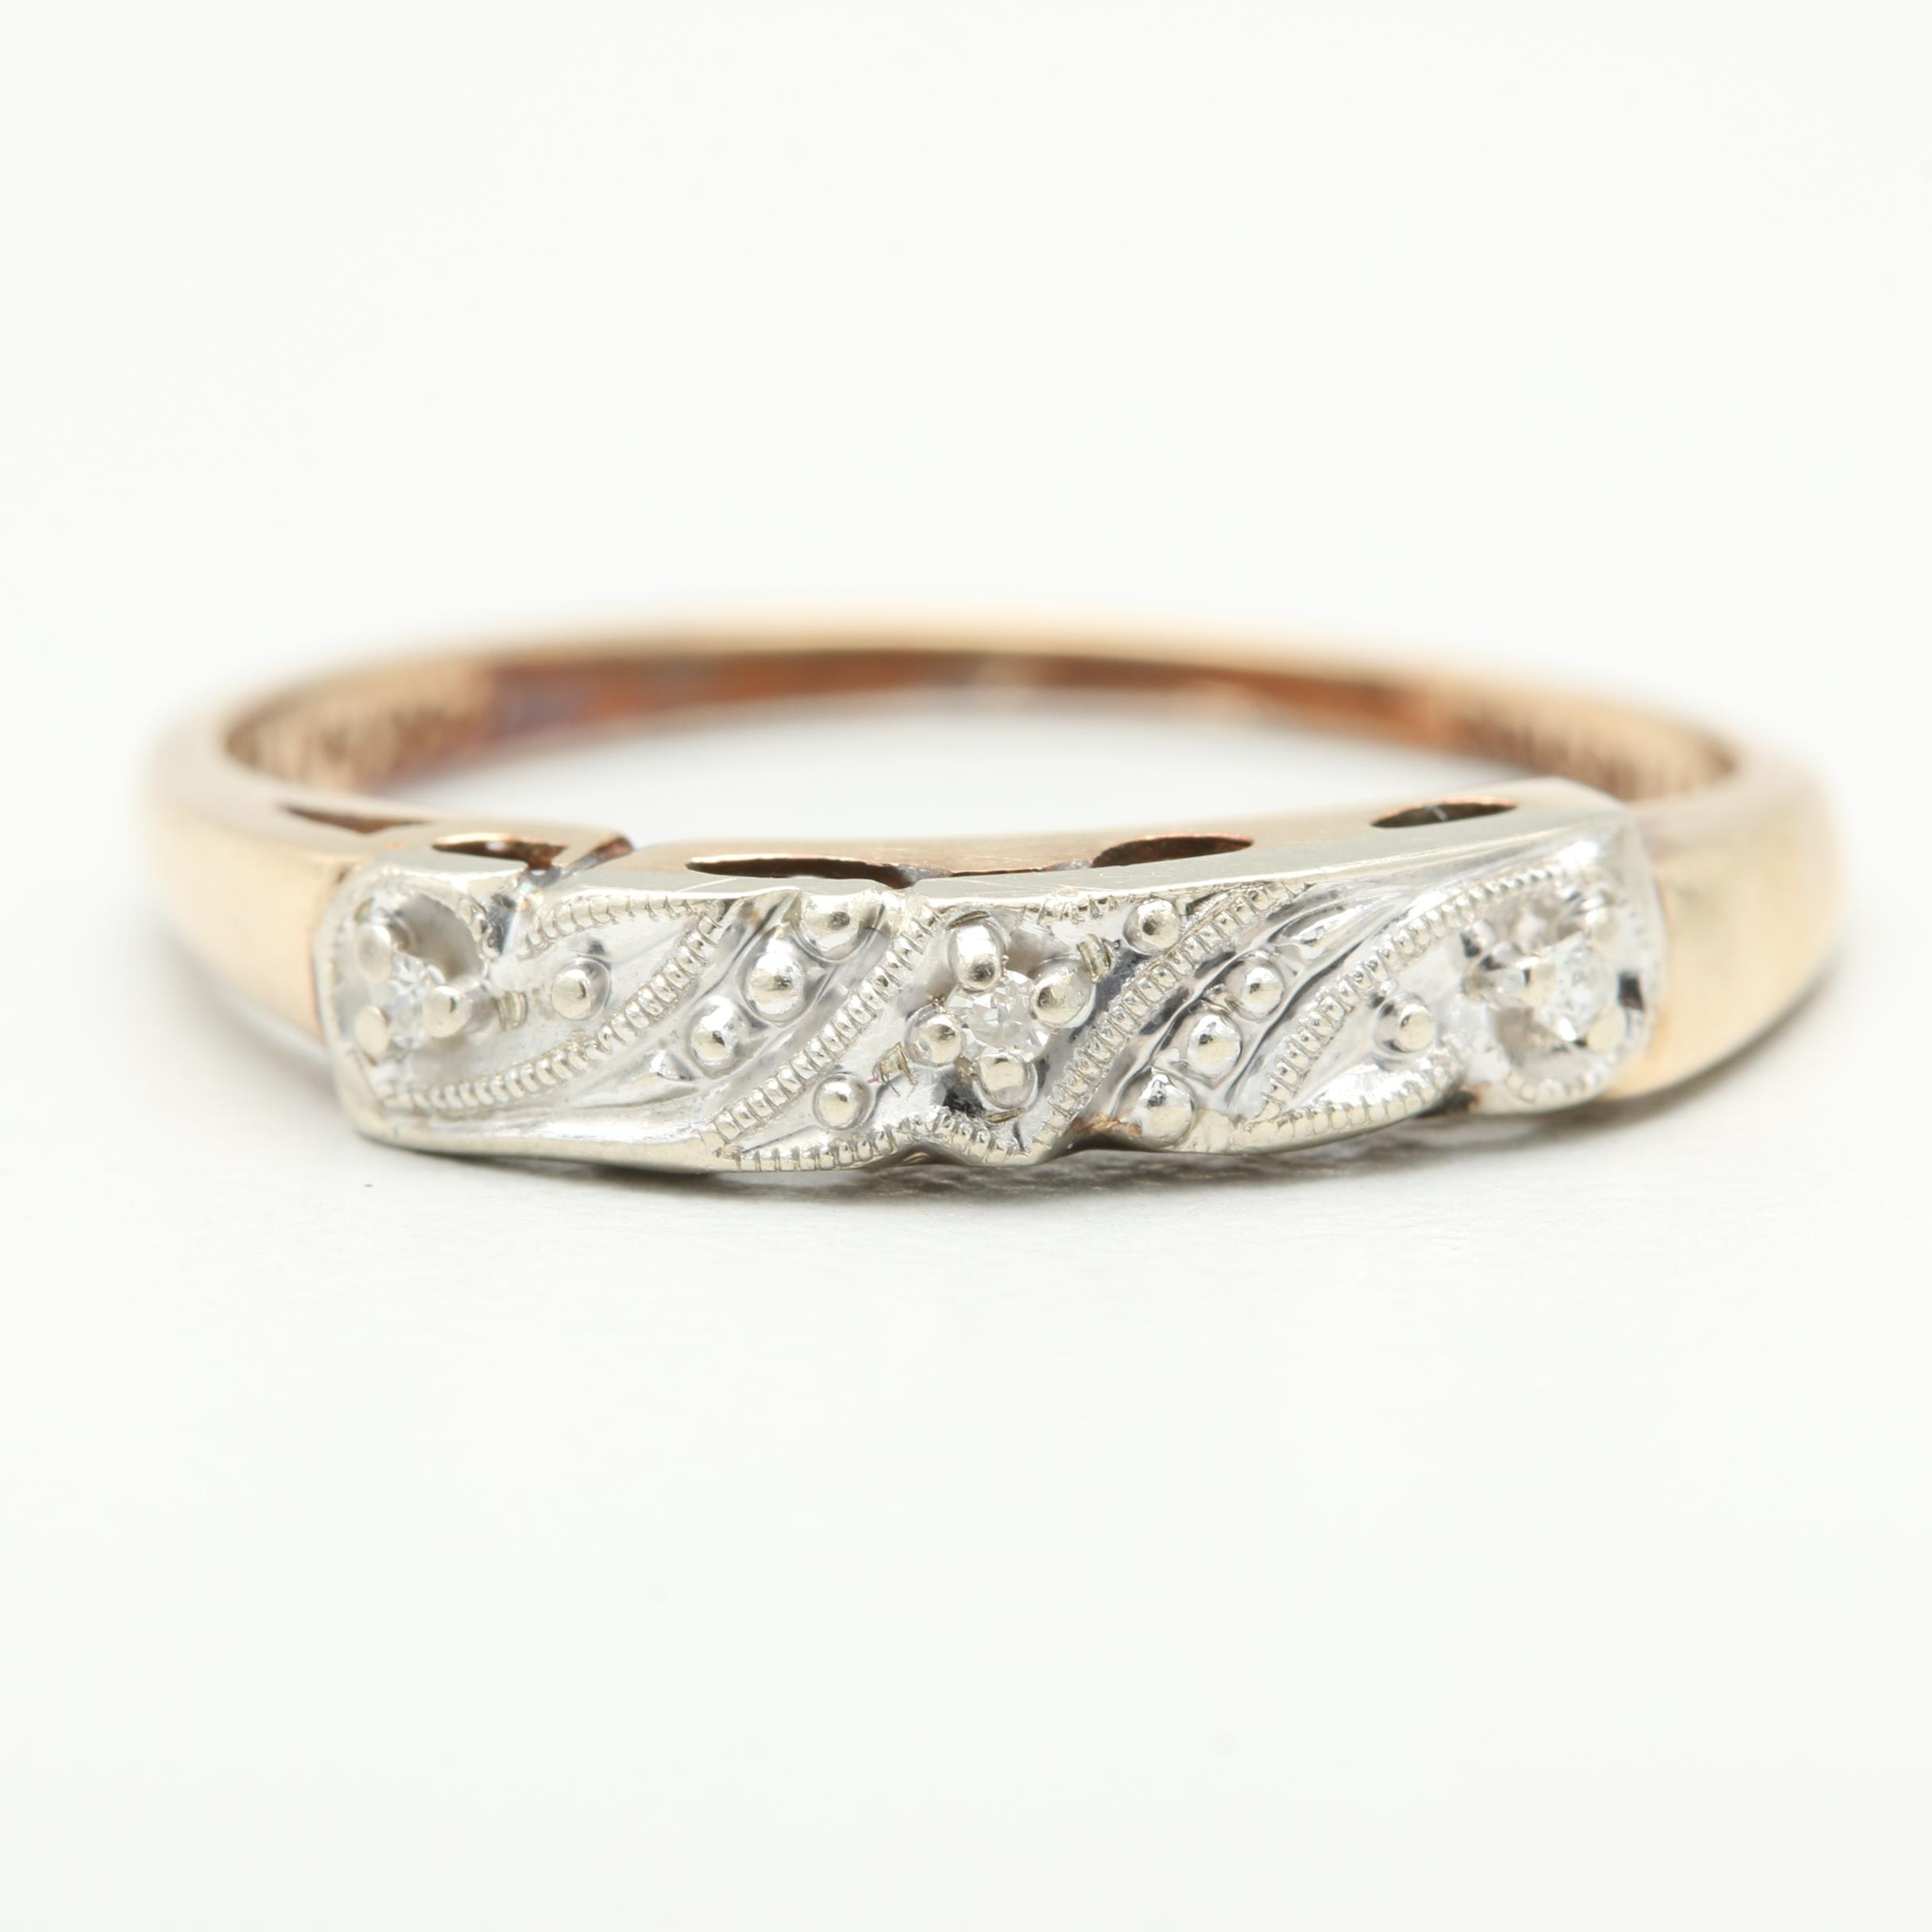 Vintage Eisenstadt Mfg. 14K Yellow Gold Diamond Ring with White Gold Accents